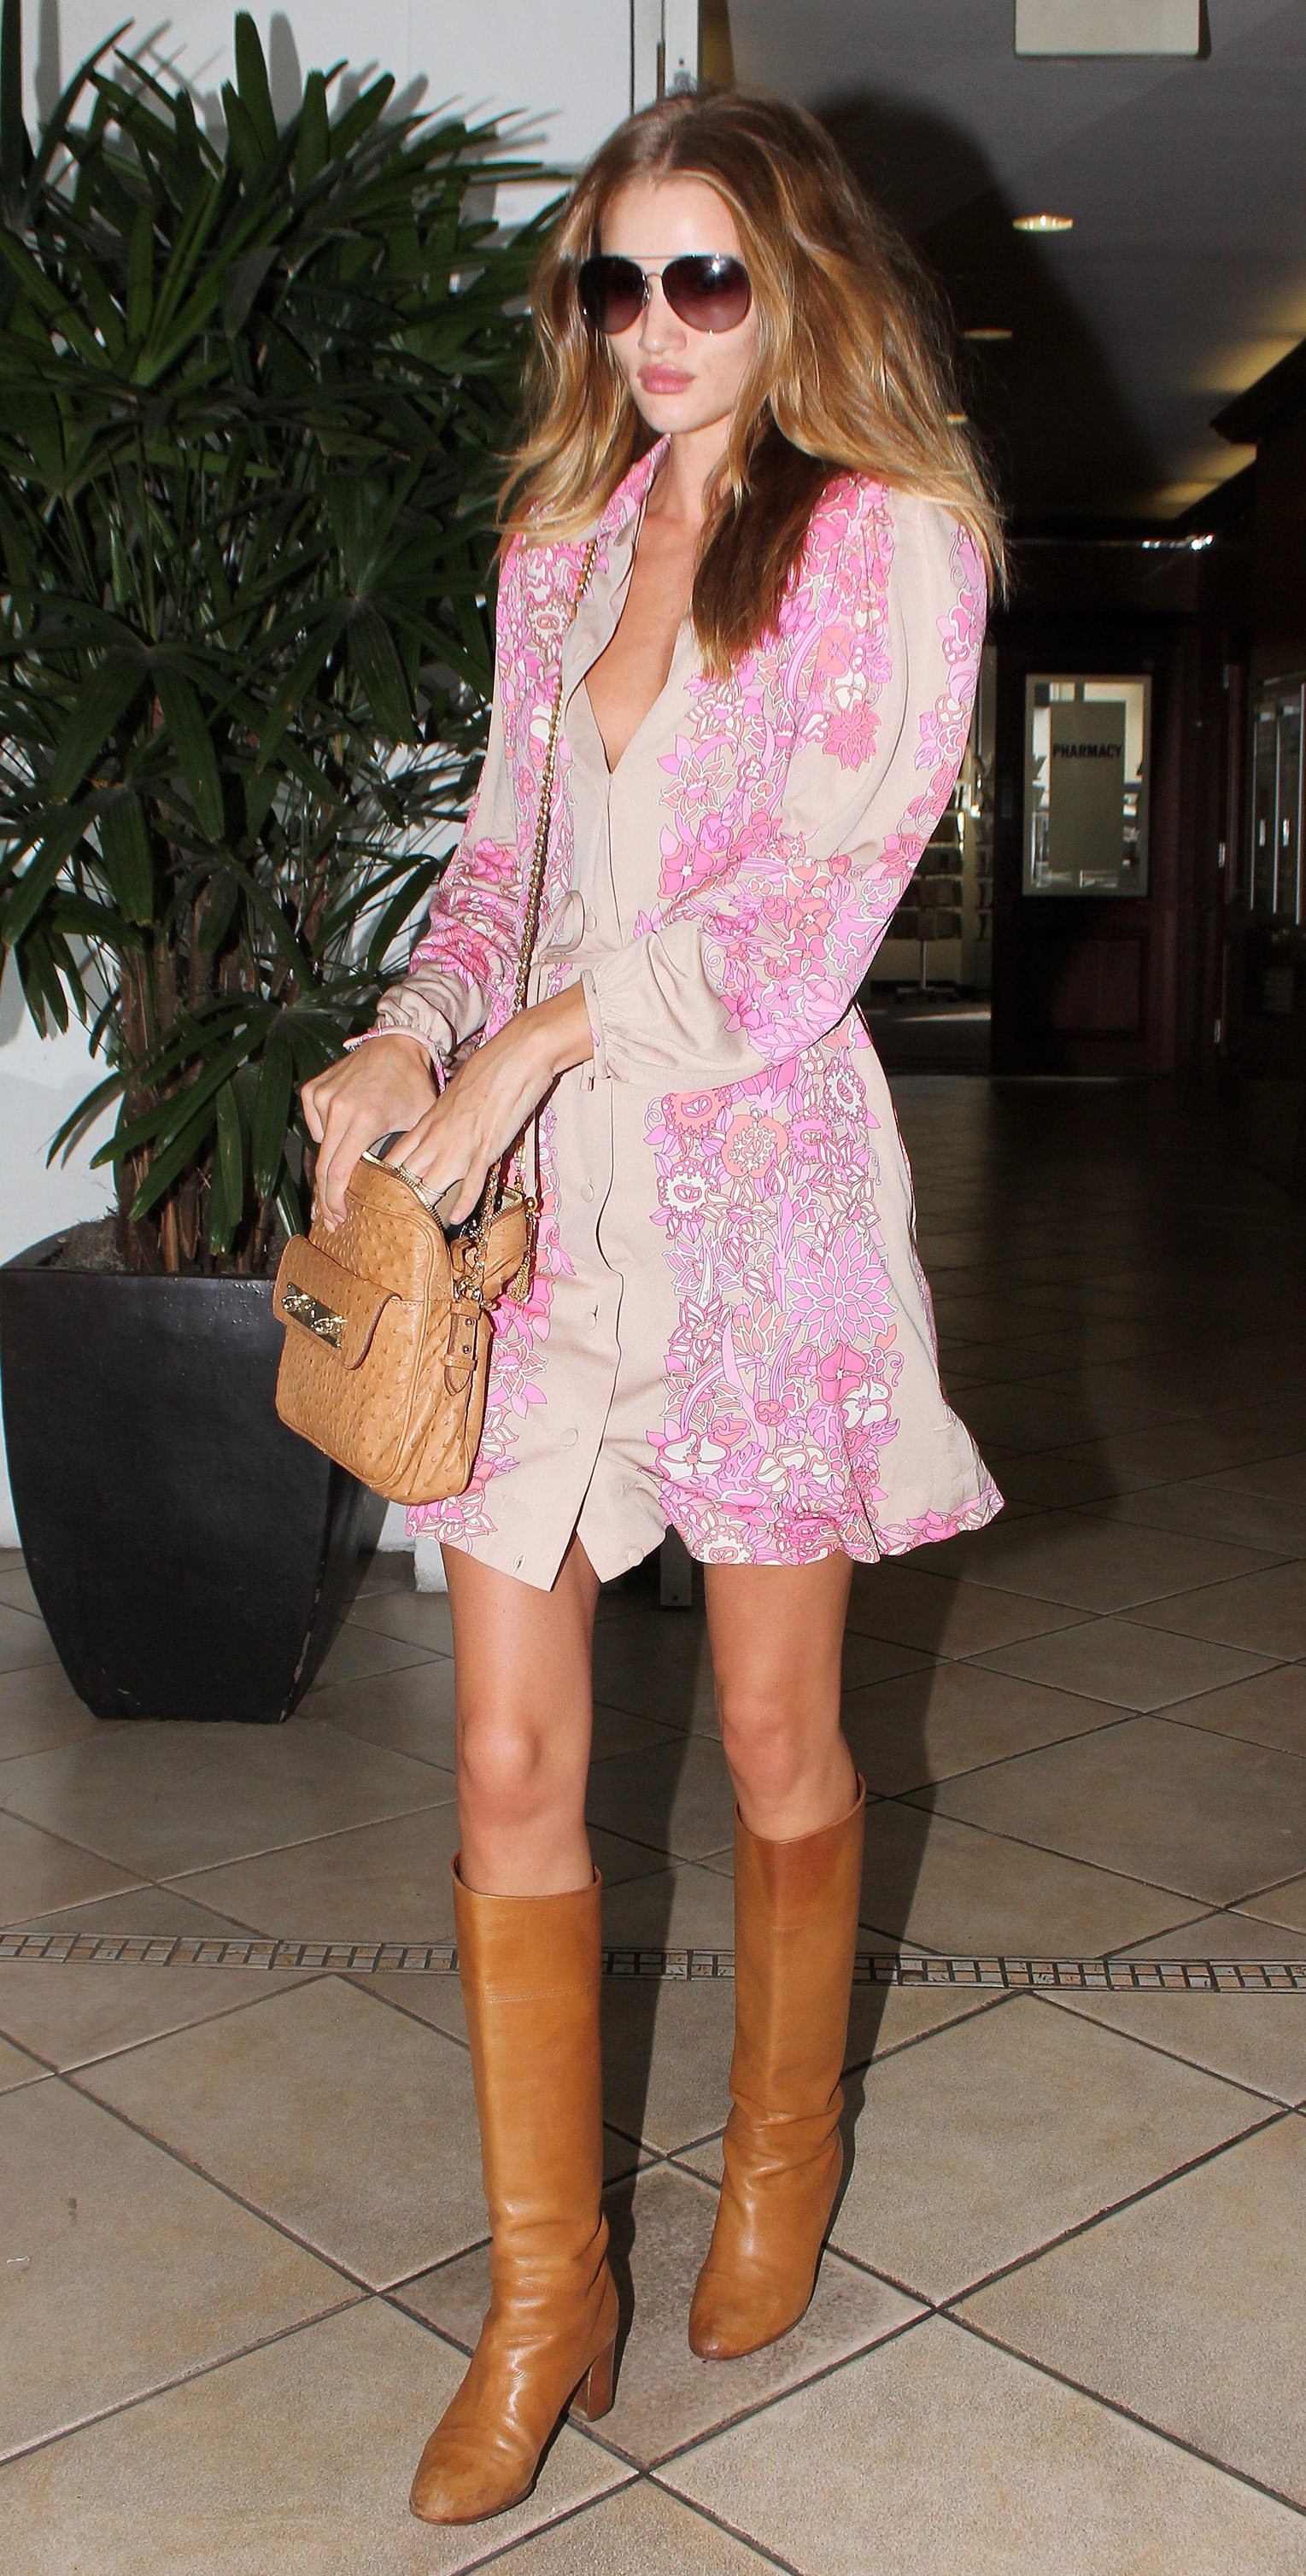 Steal Her Style: Rosie Huntington-Whiteley's Sleek Knee-High Boots